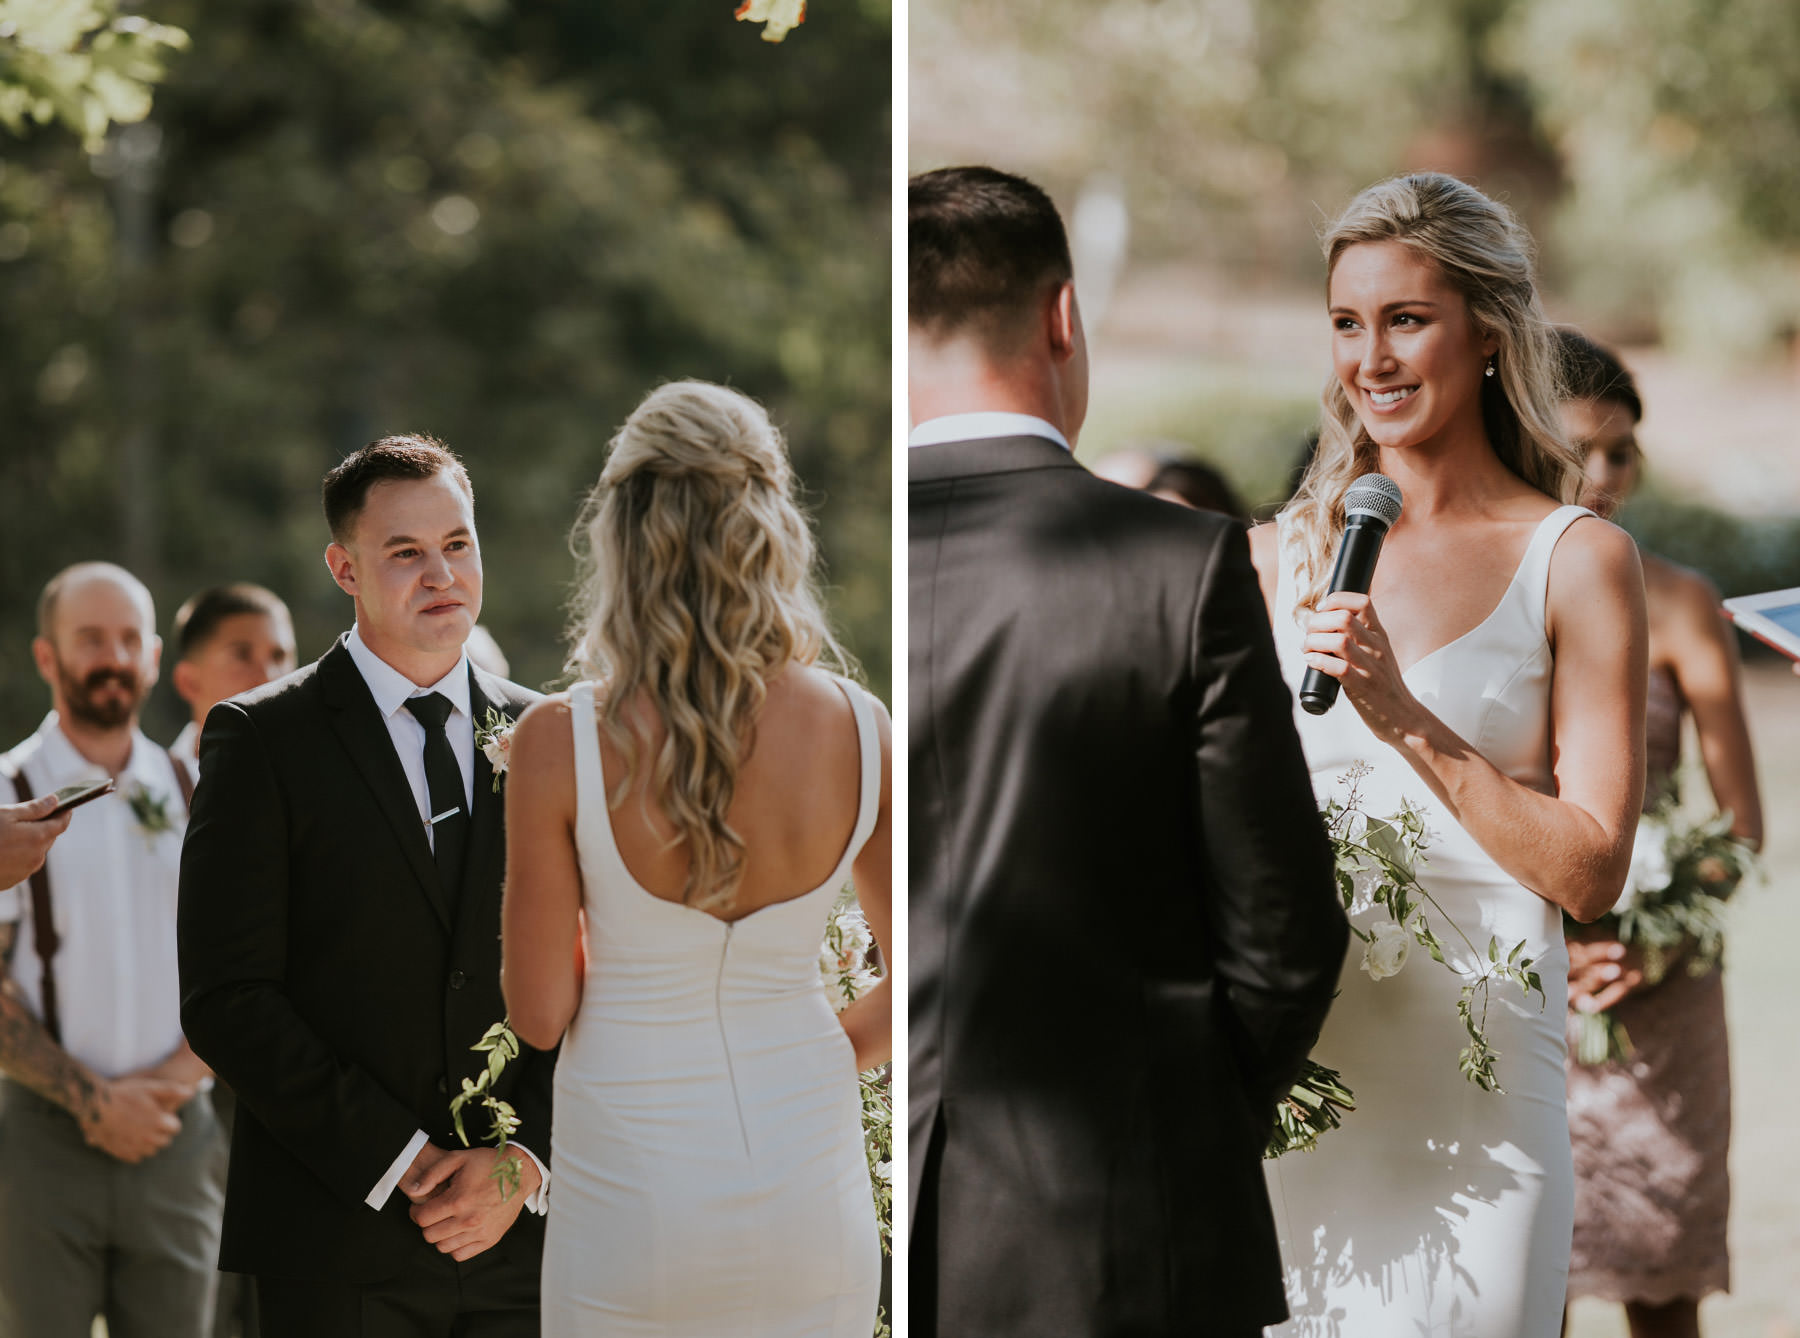 Bride and groom exchanging vows in outdoor ceremony